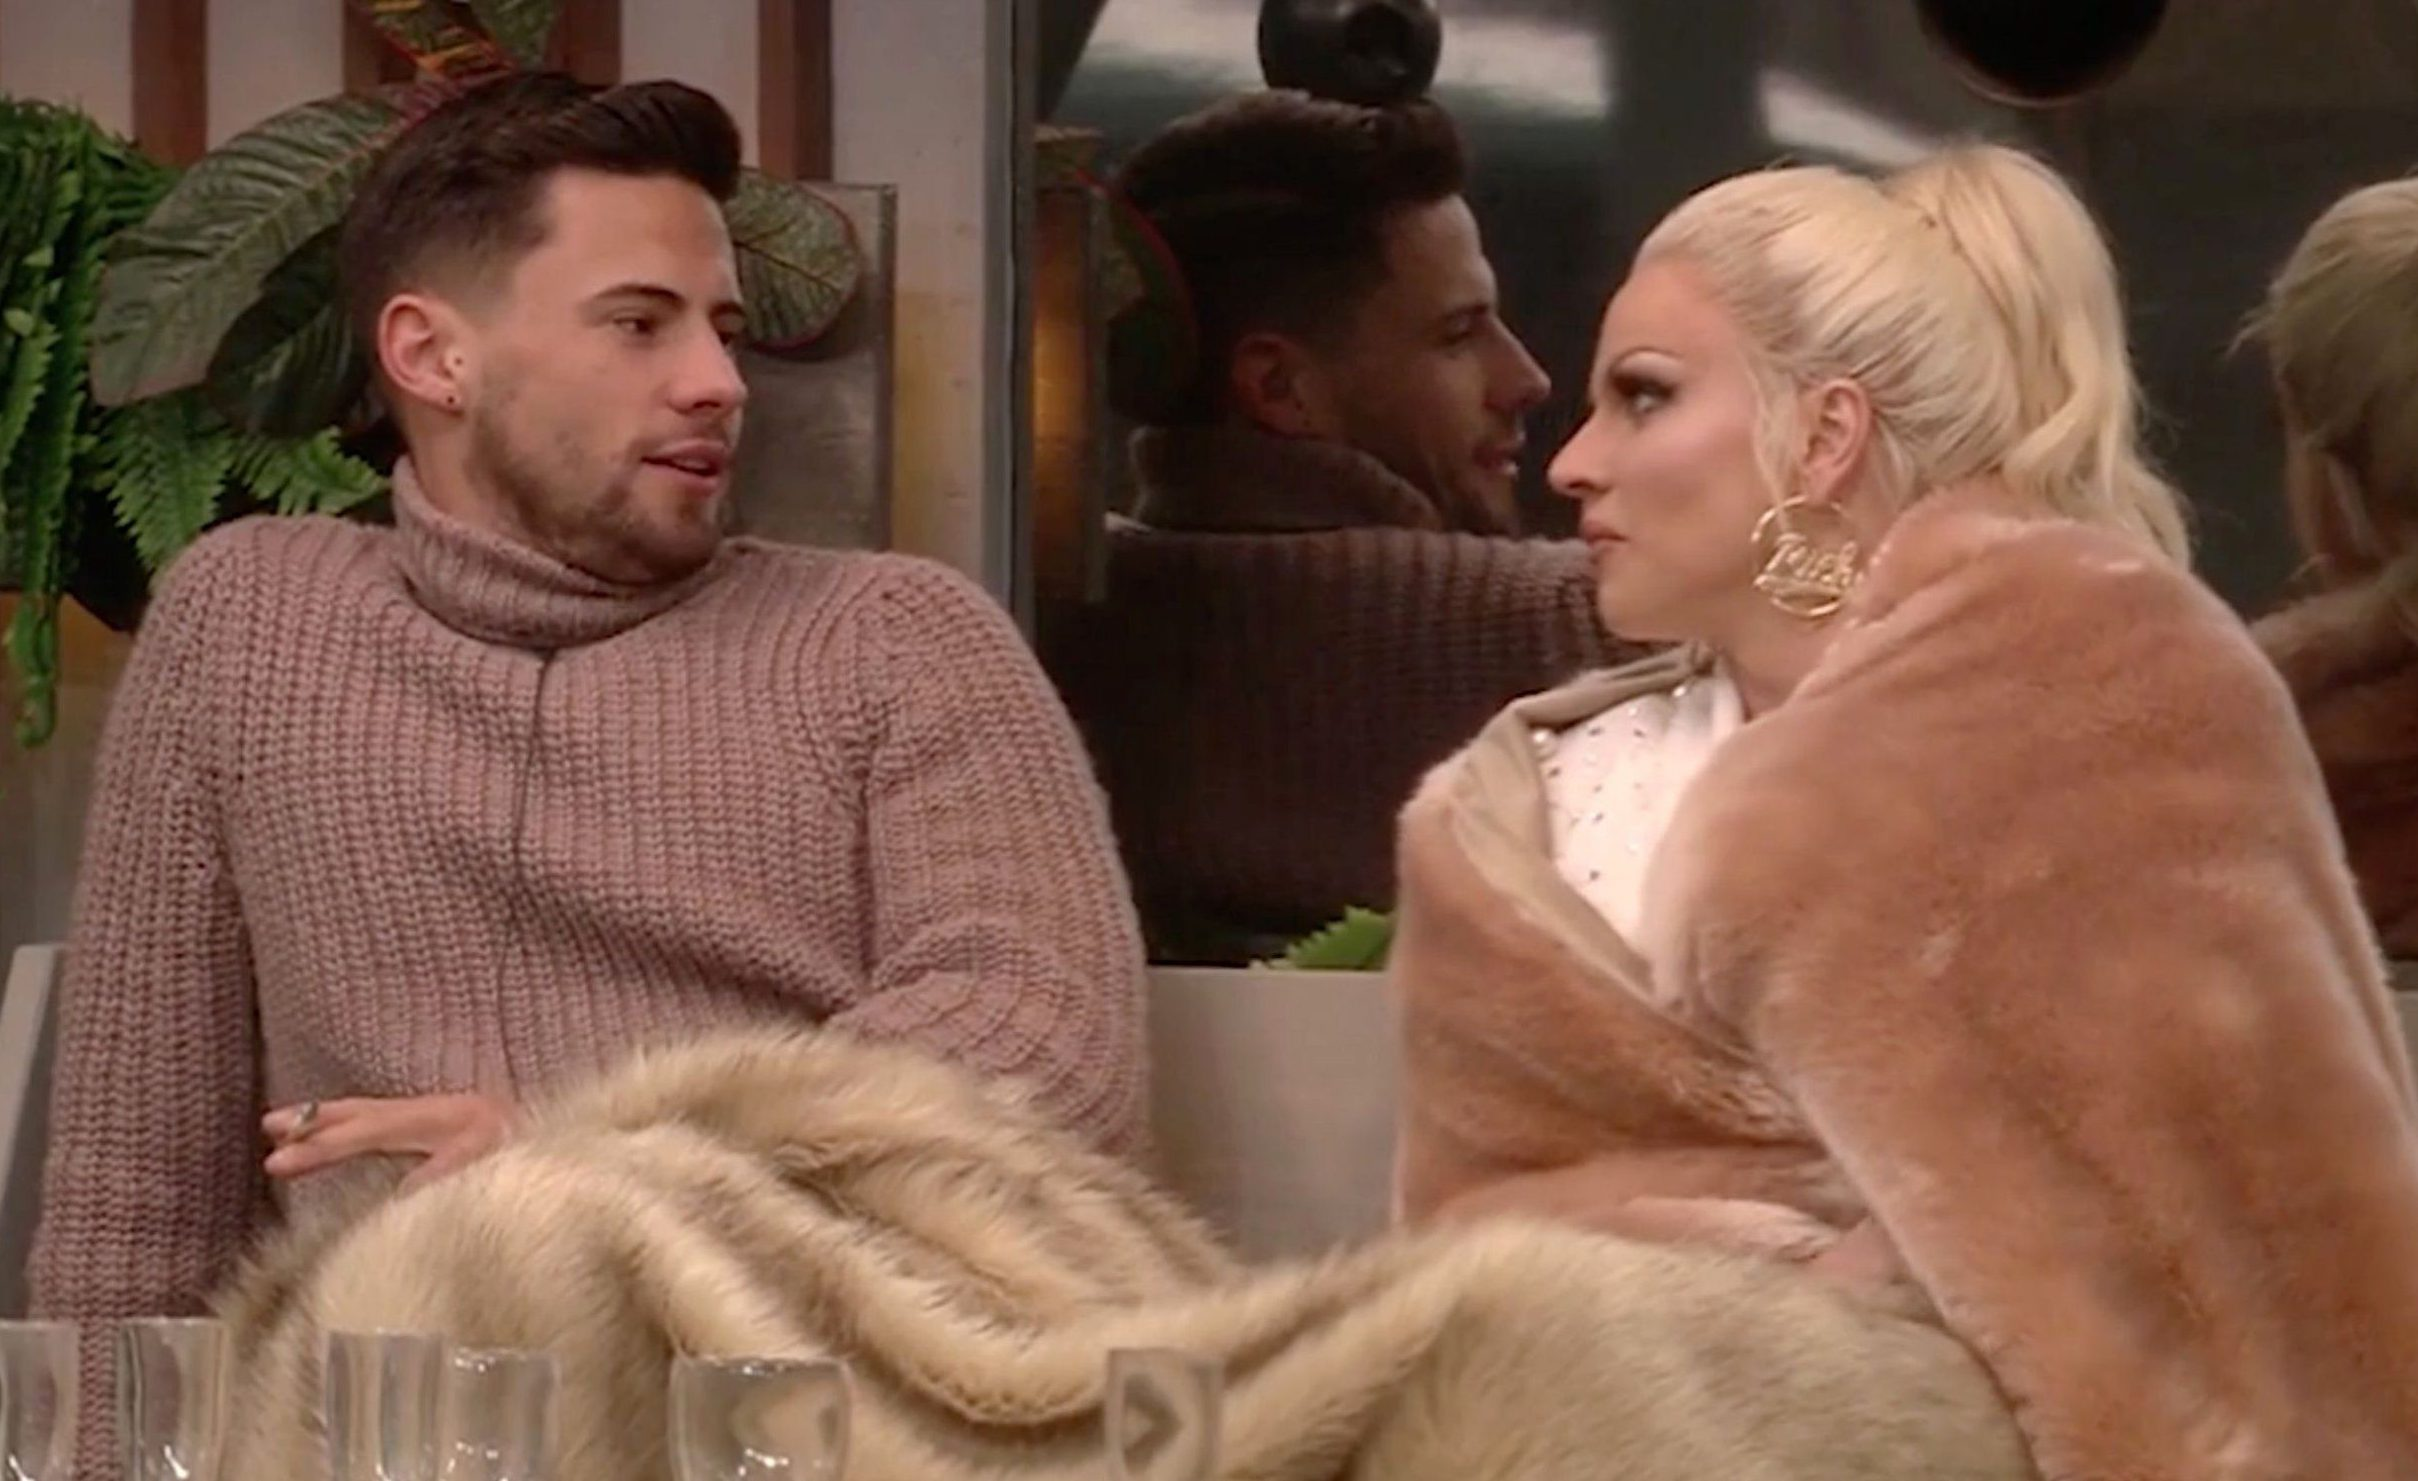 Editorial Use Only Mandatory Credit: Photo by REX/Shutterstock (9318733j) Courtney Act and Andrew Brady 'Celebrity Big Brother' TV show, Series 21, Elstree Studios, Hertfordshire, UK - 13 Jan 2018